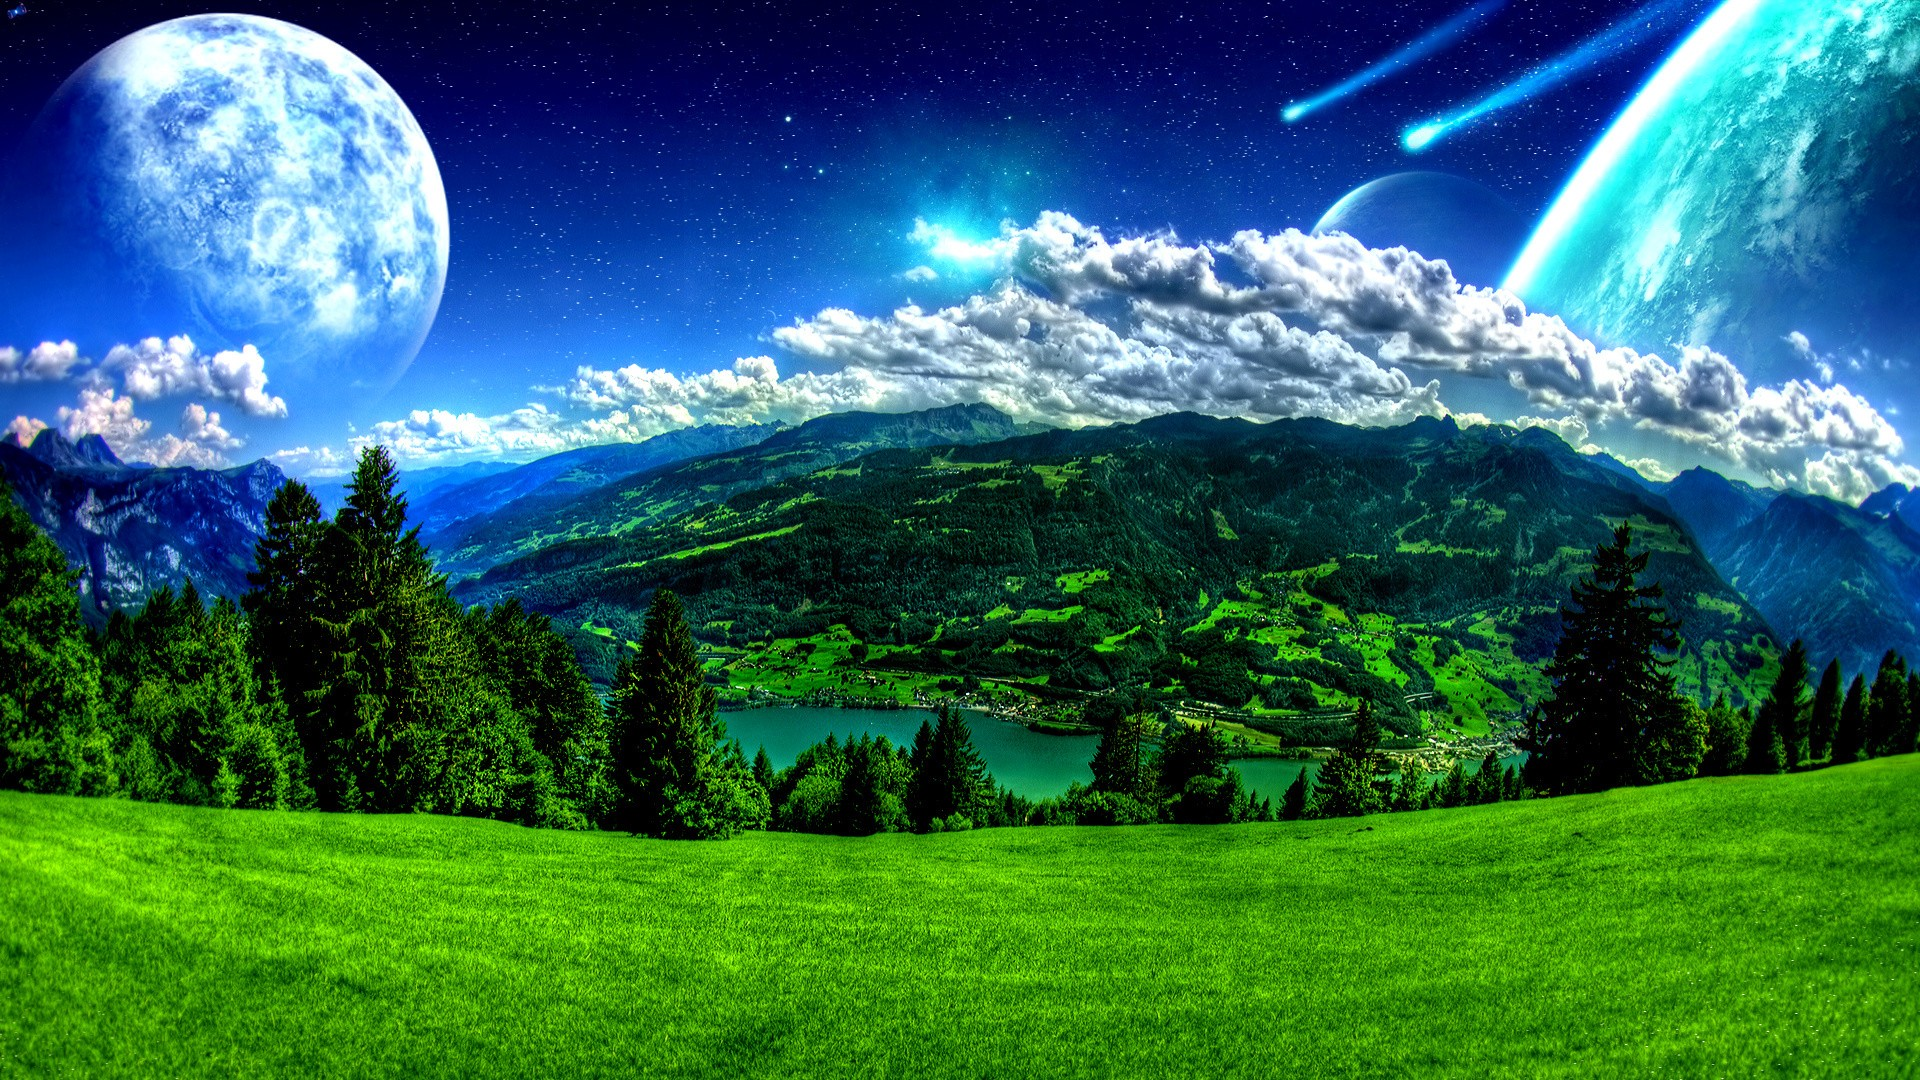 Free Download Landscapes Outer Wallpaper 1920x1080